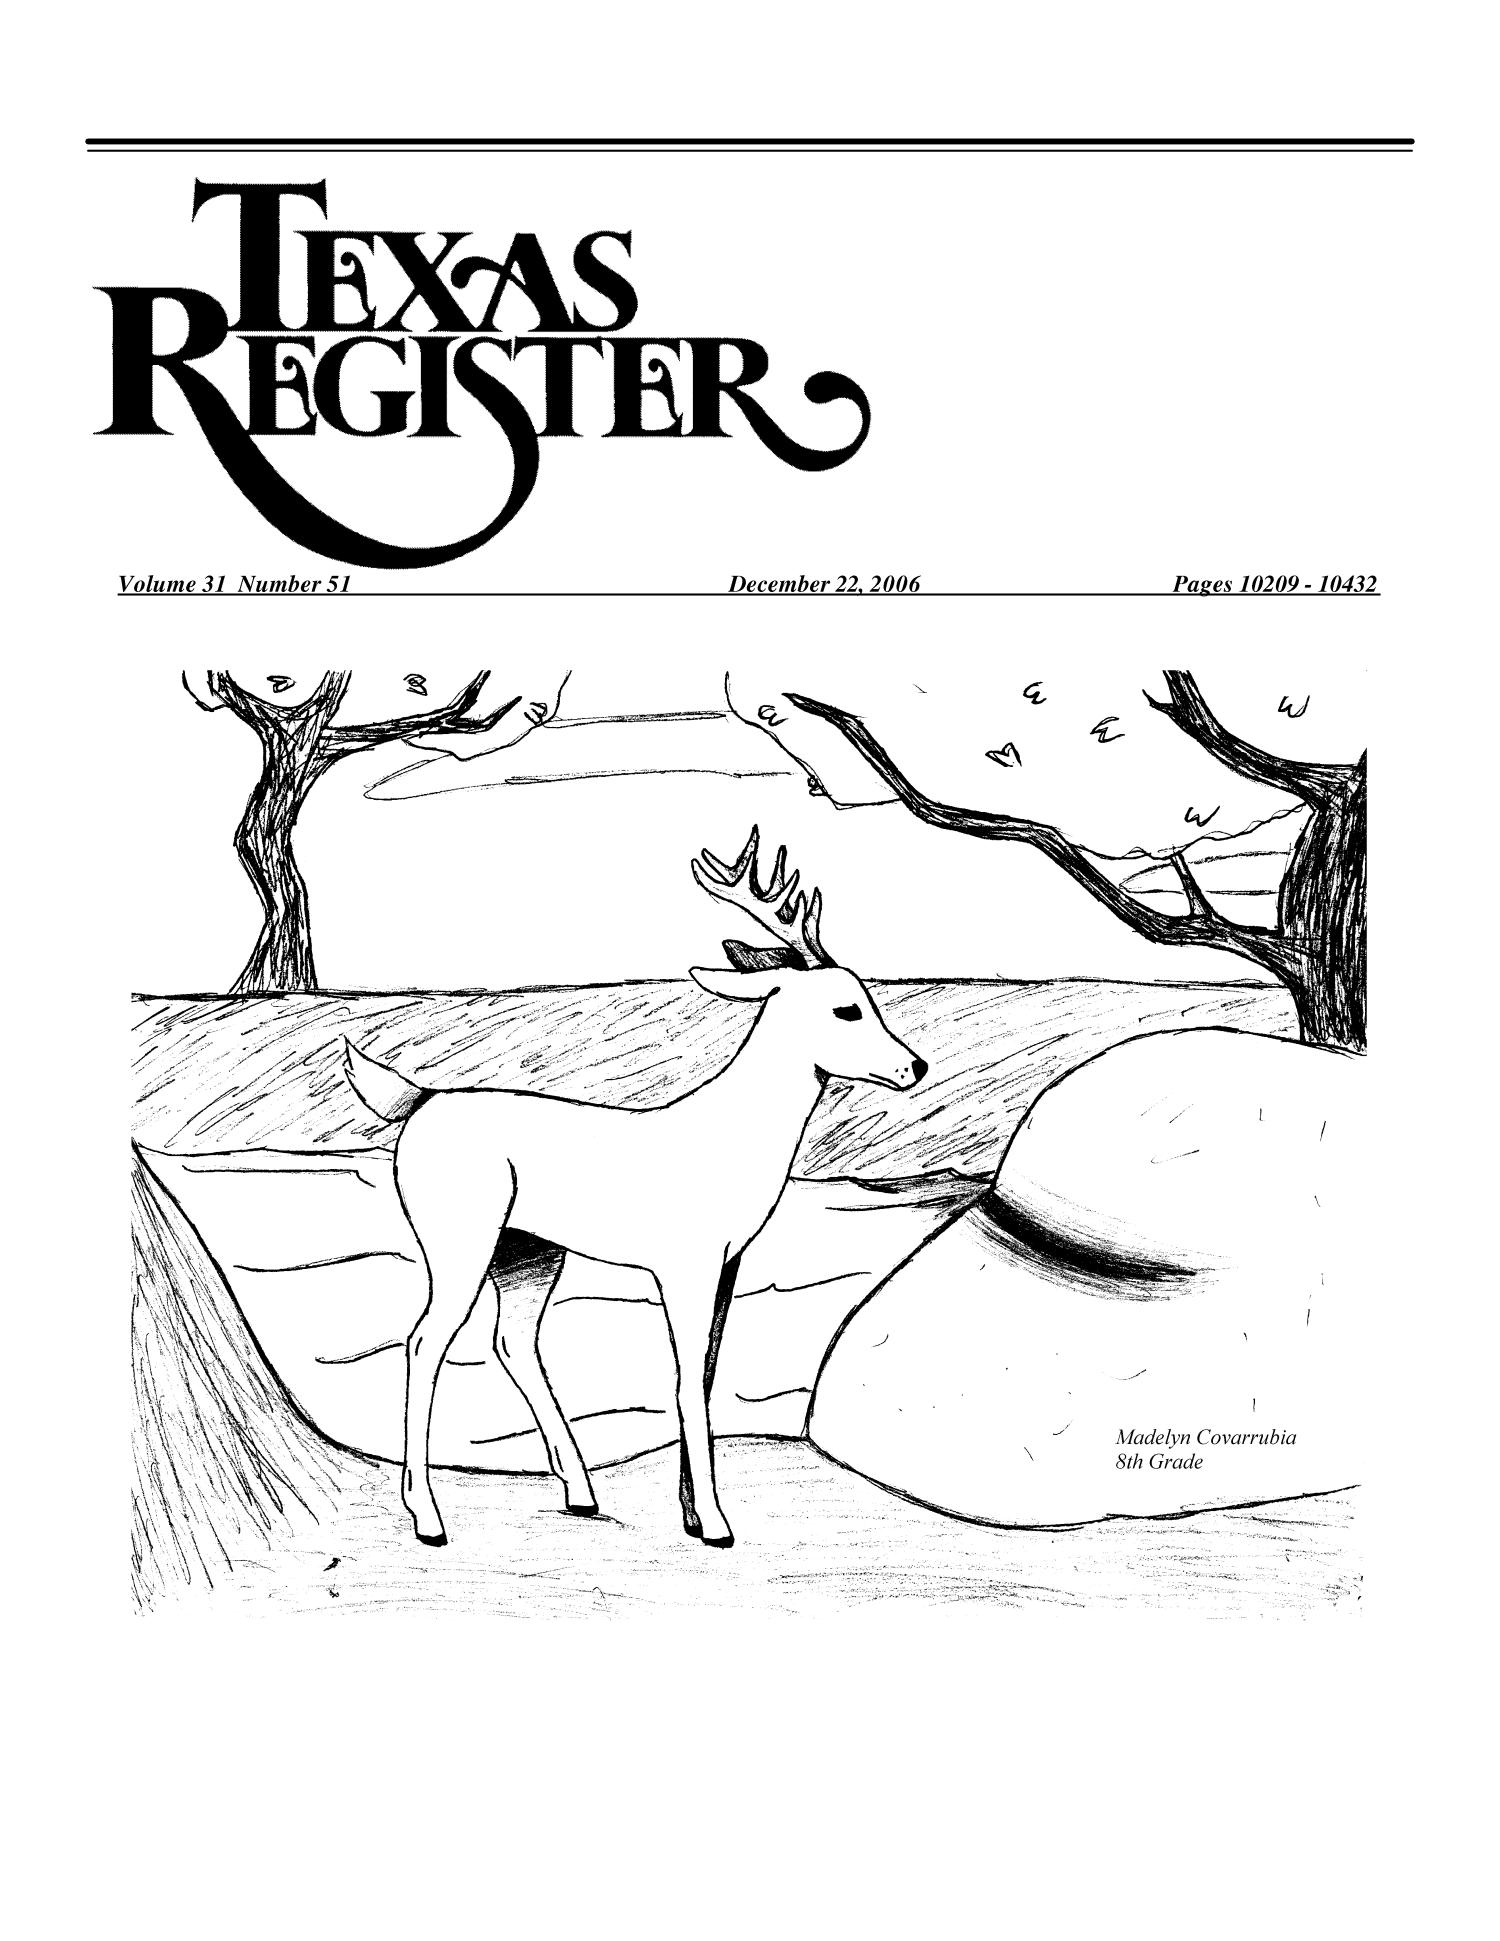 Texas Register, Volume 31, Number 51, Pages 10209-10432